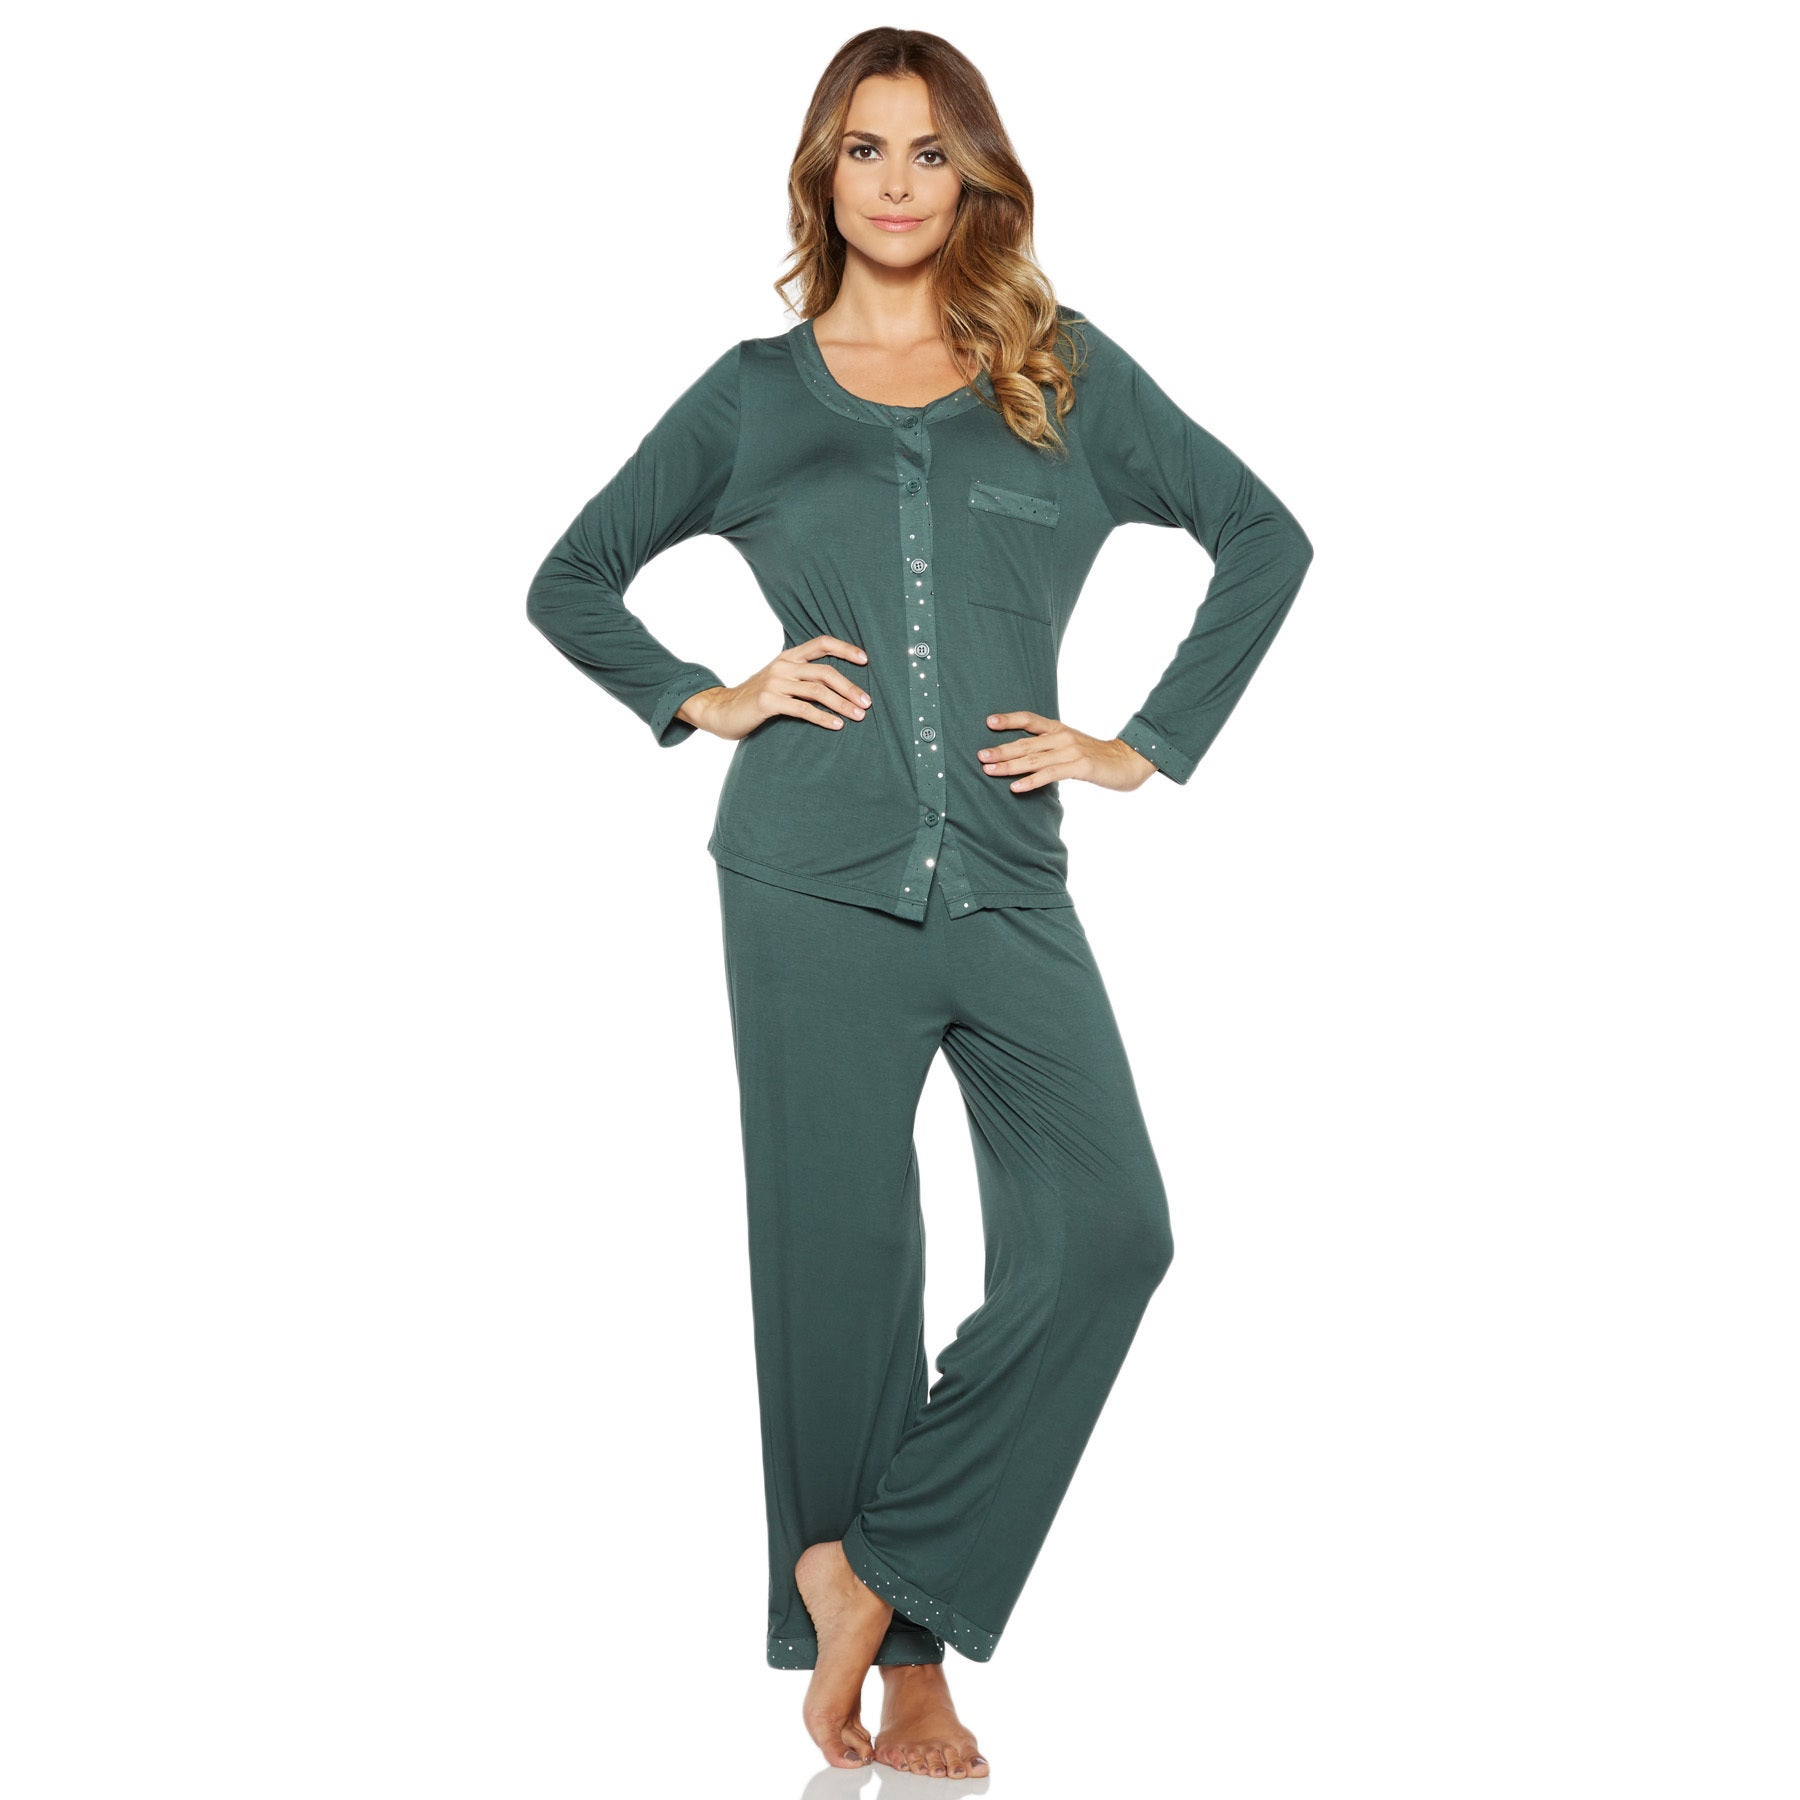 f27241b77d Shop Rhonda Shear Women s Shimmery Pajama Set with Sparkle Accents (S-3X) -  Free Shipping On Orders Over  45 - Overstock - 11914863